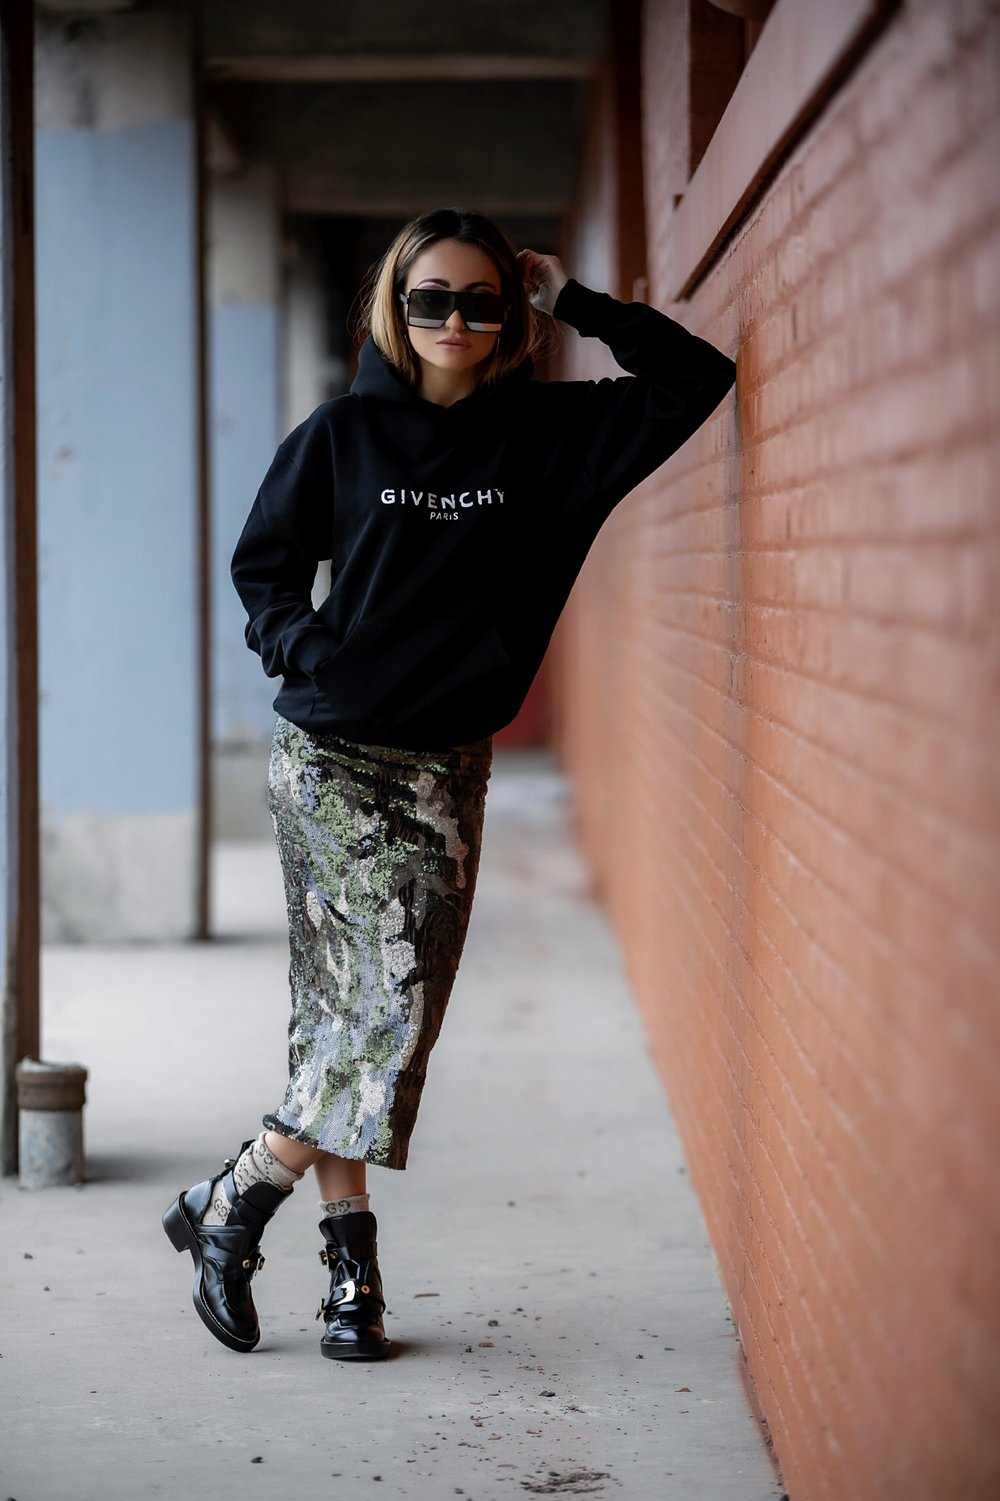 Lauren Recchia wearing Givenchy, Le Superbe California, Gucci socks, Balenciaga boots, and Saint Laurent sunglasses